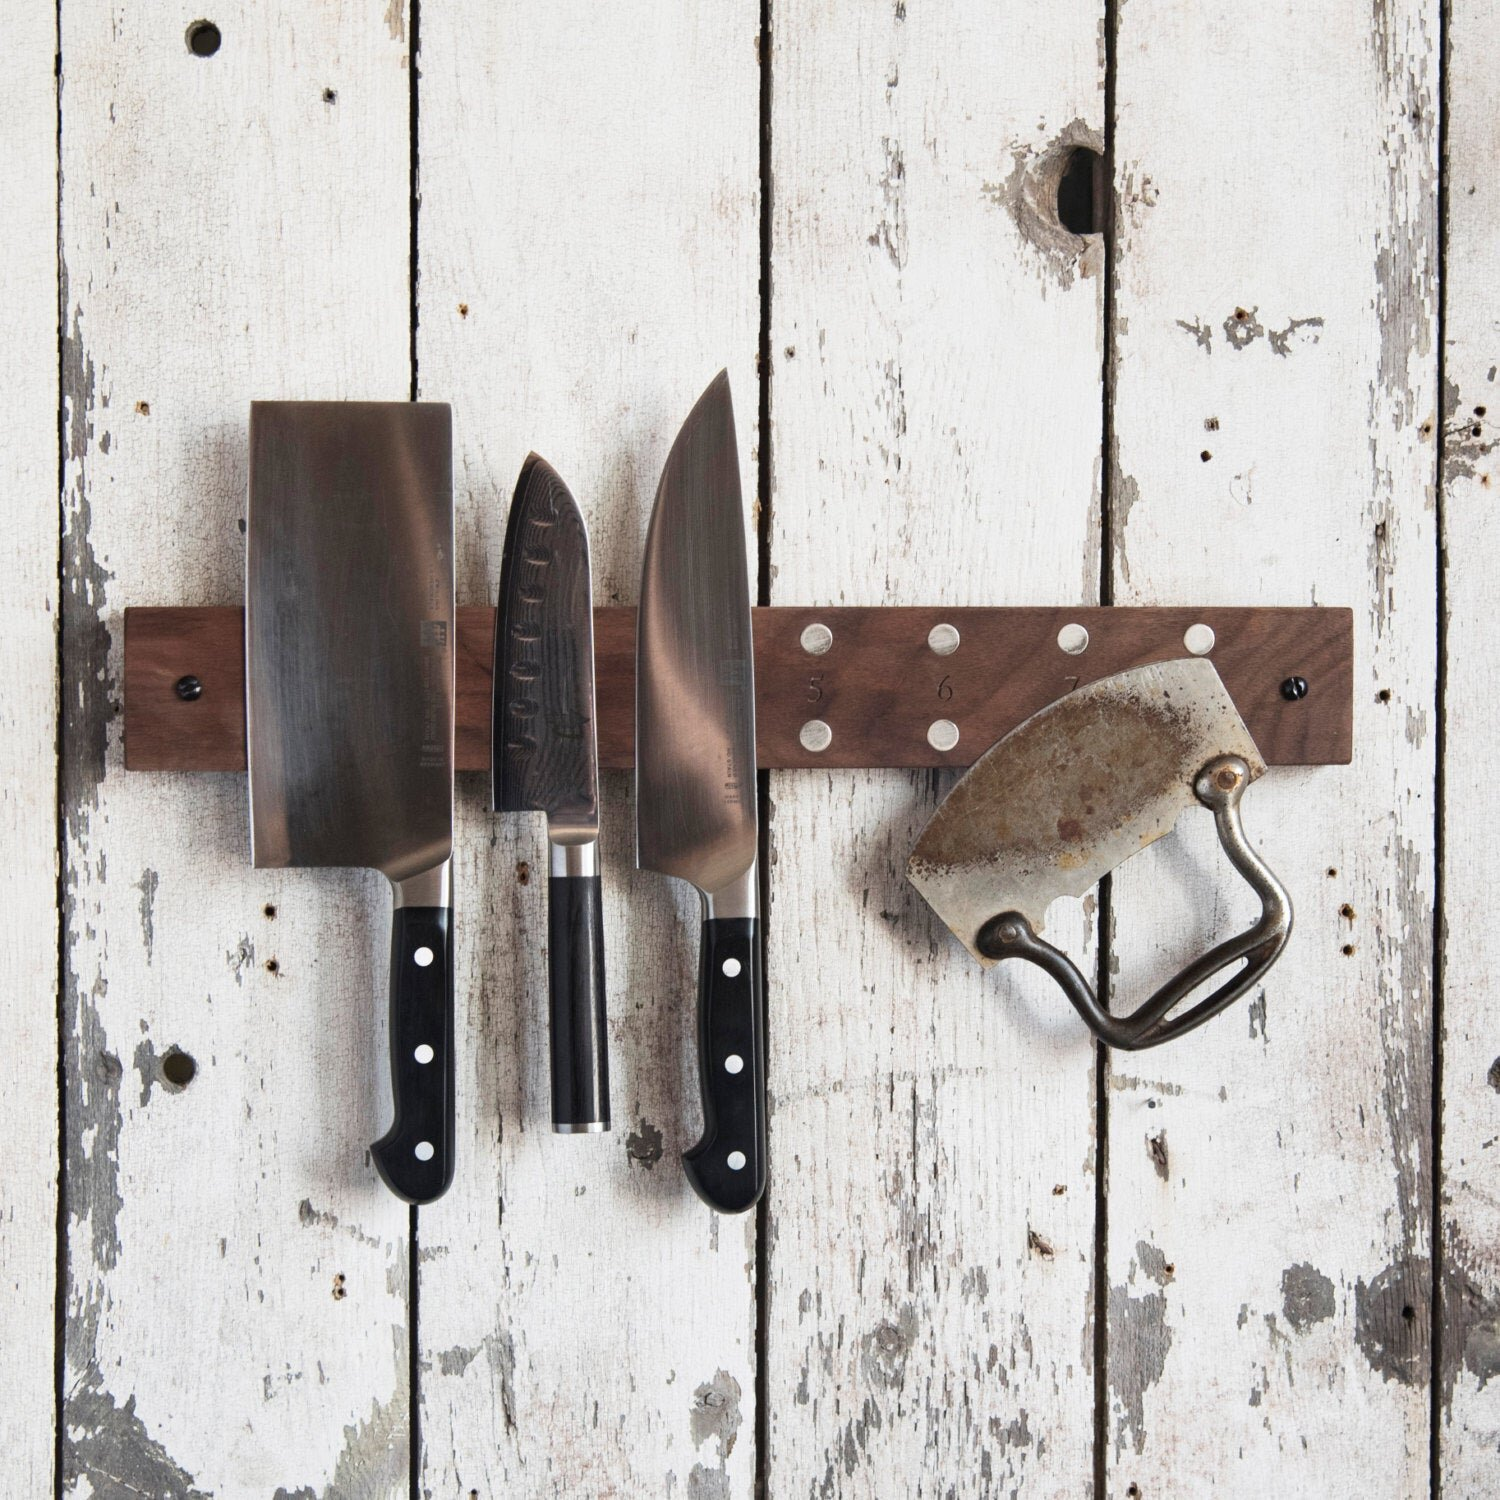 Sustainably Sourced Magnetic Wood Knife Wall Rack by Peg & Awl